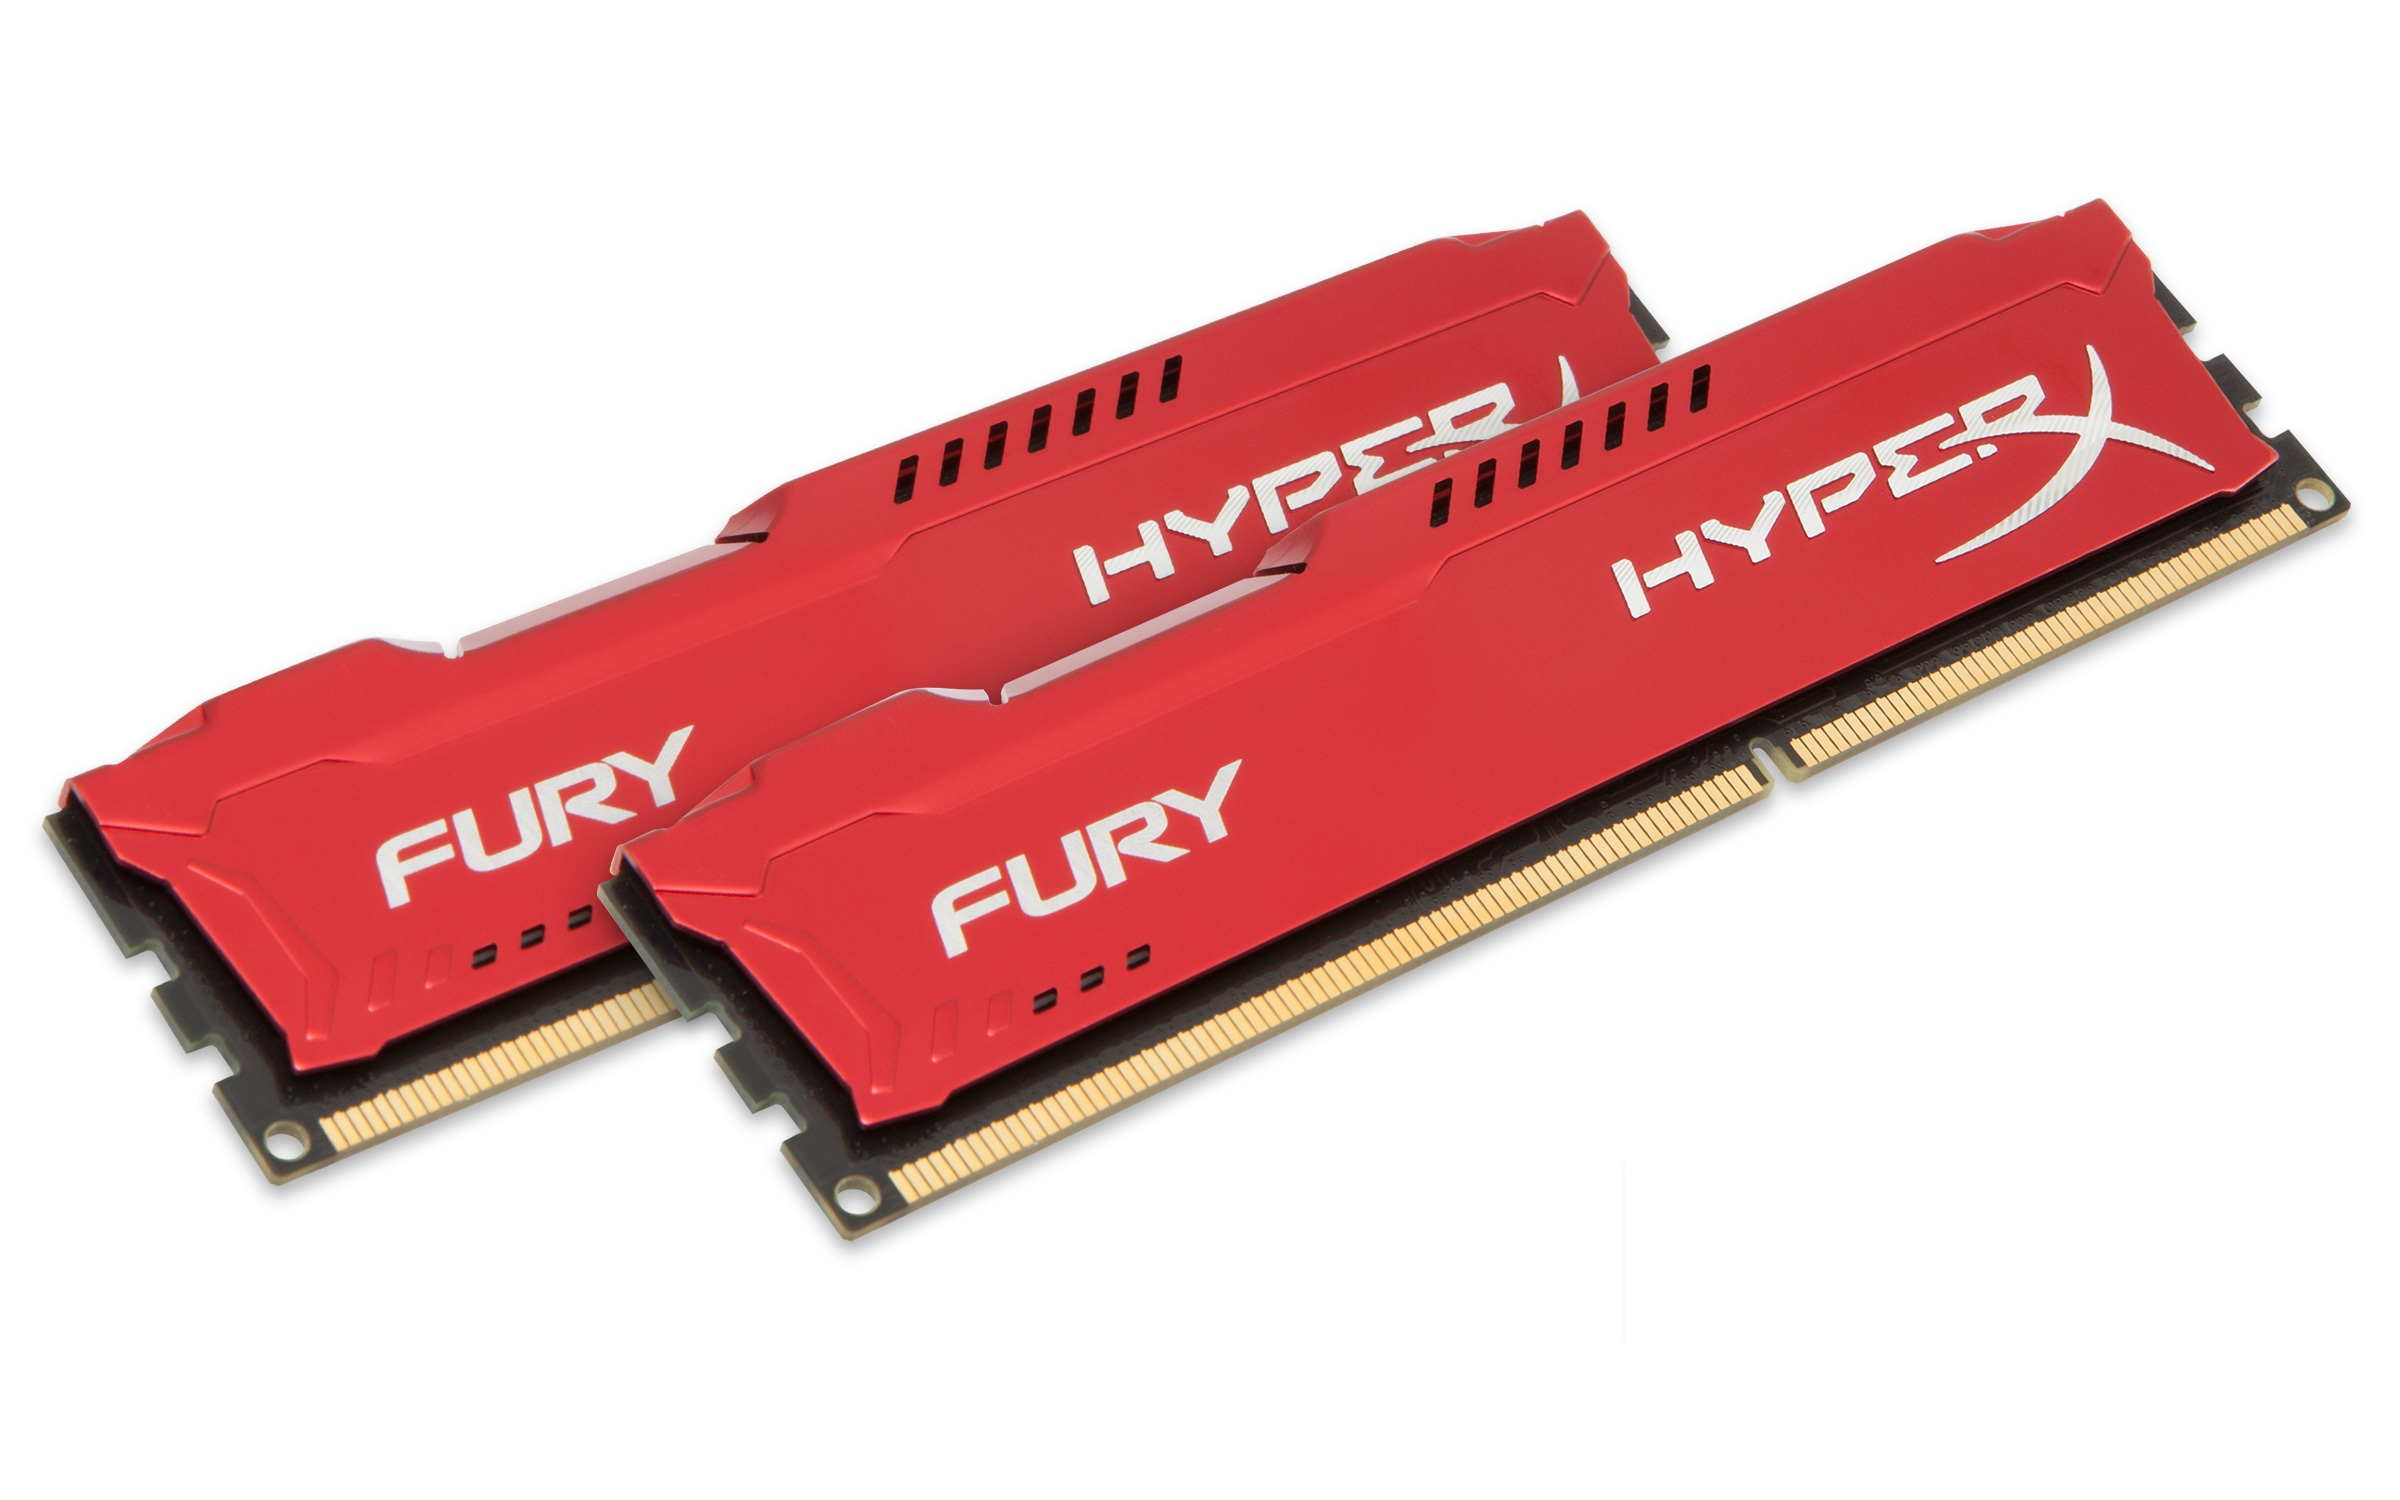 8GB 1866MHz DDR3 CL10 DIMM (Kit of 2) HyperX FURY Red